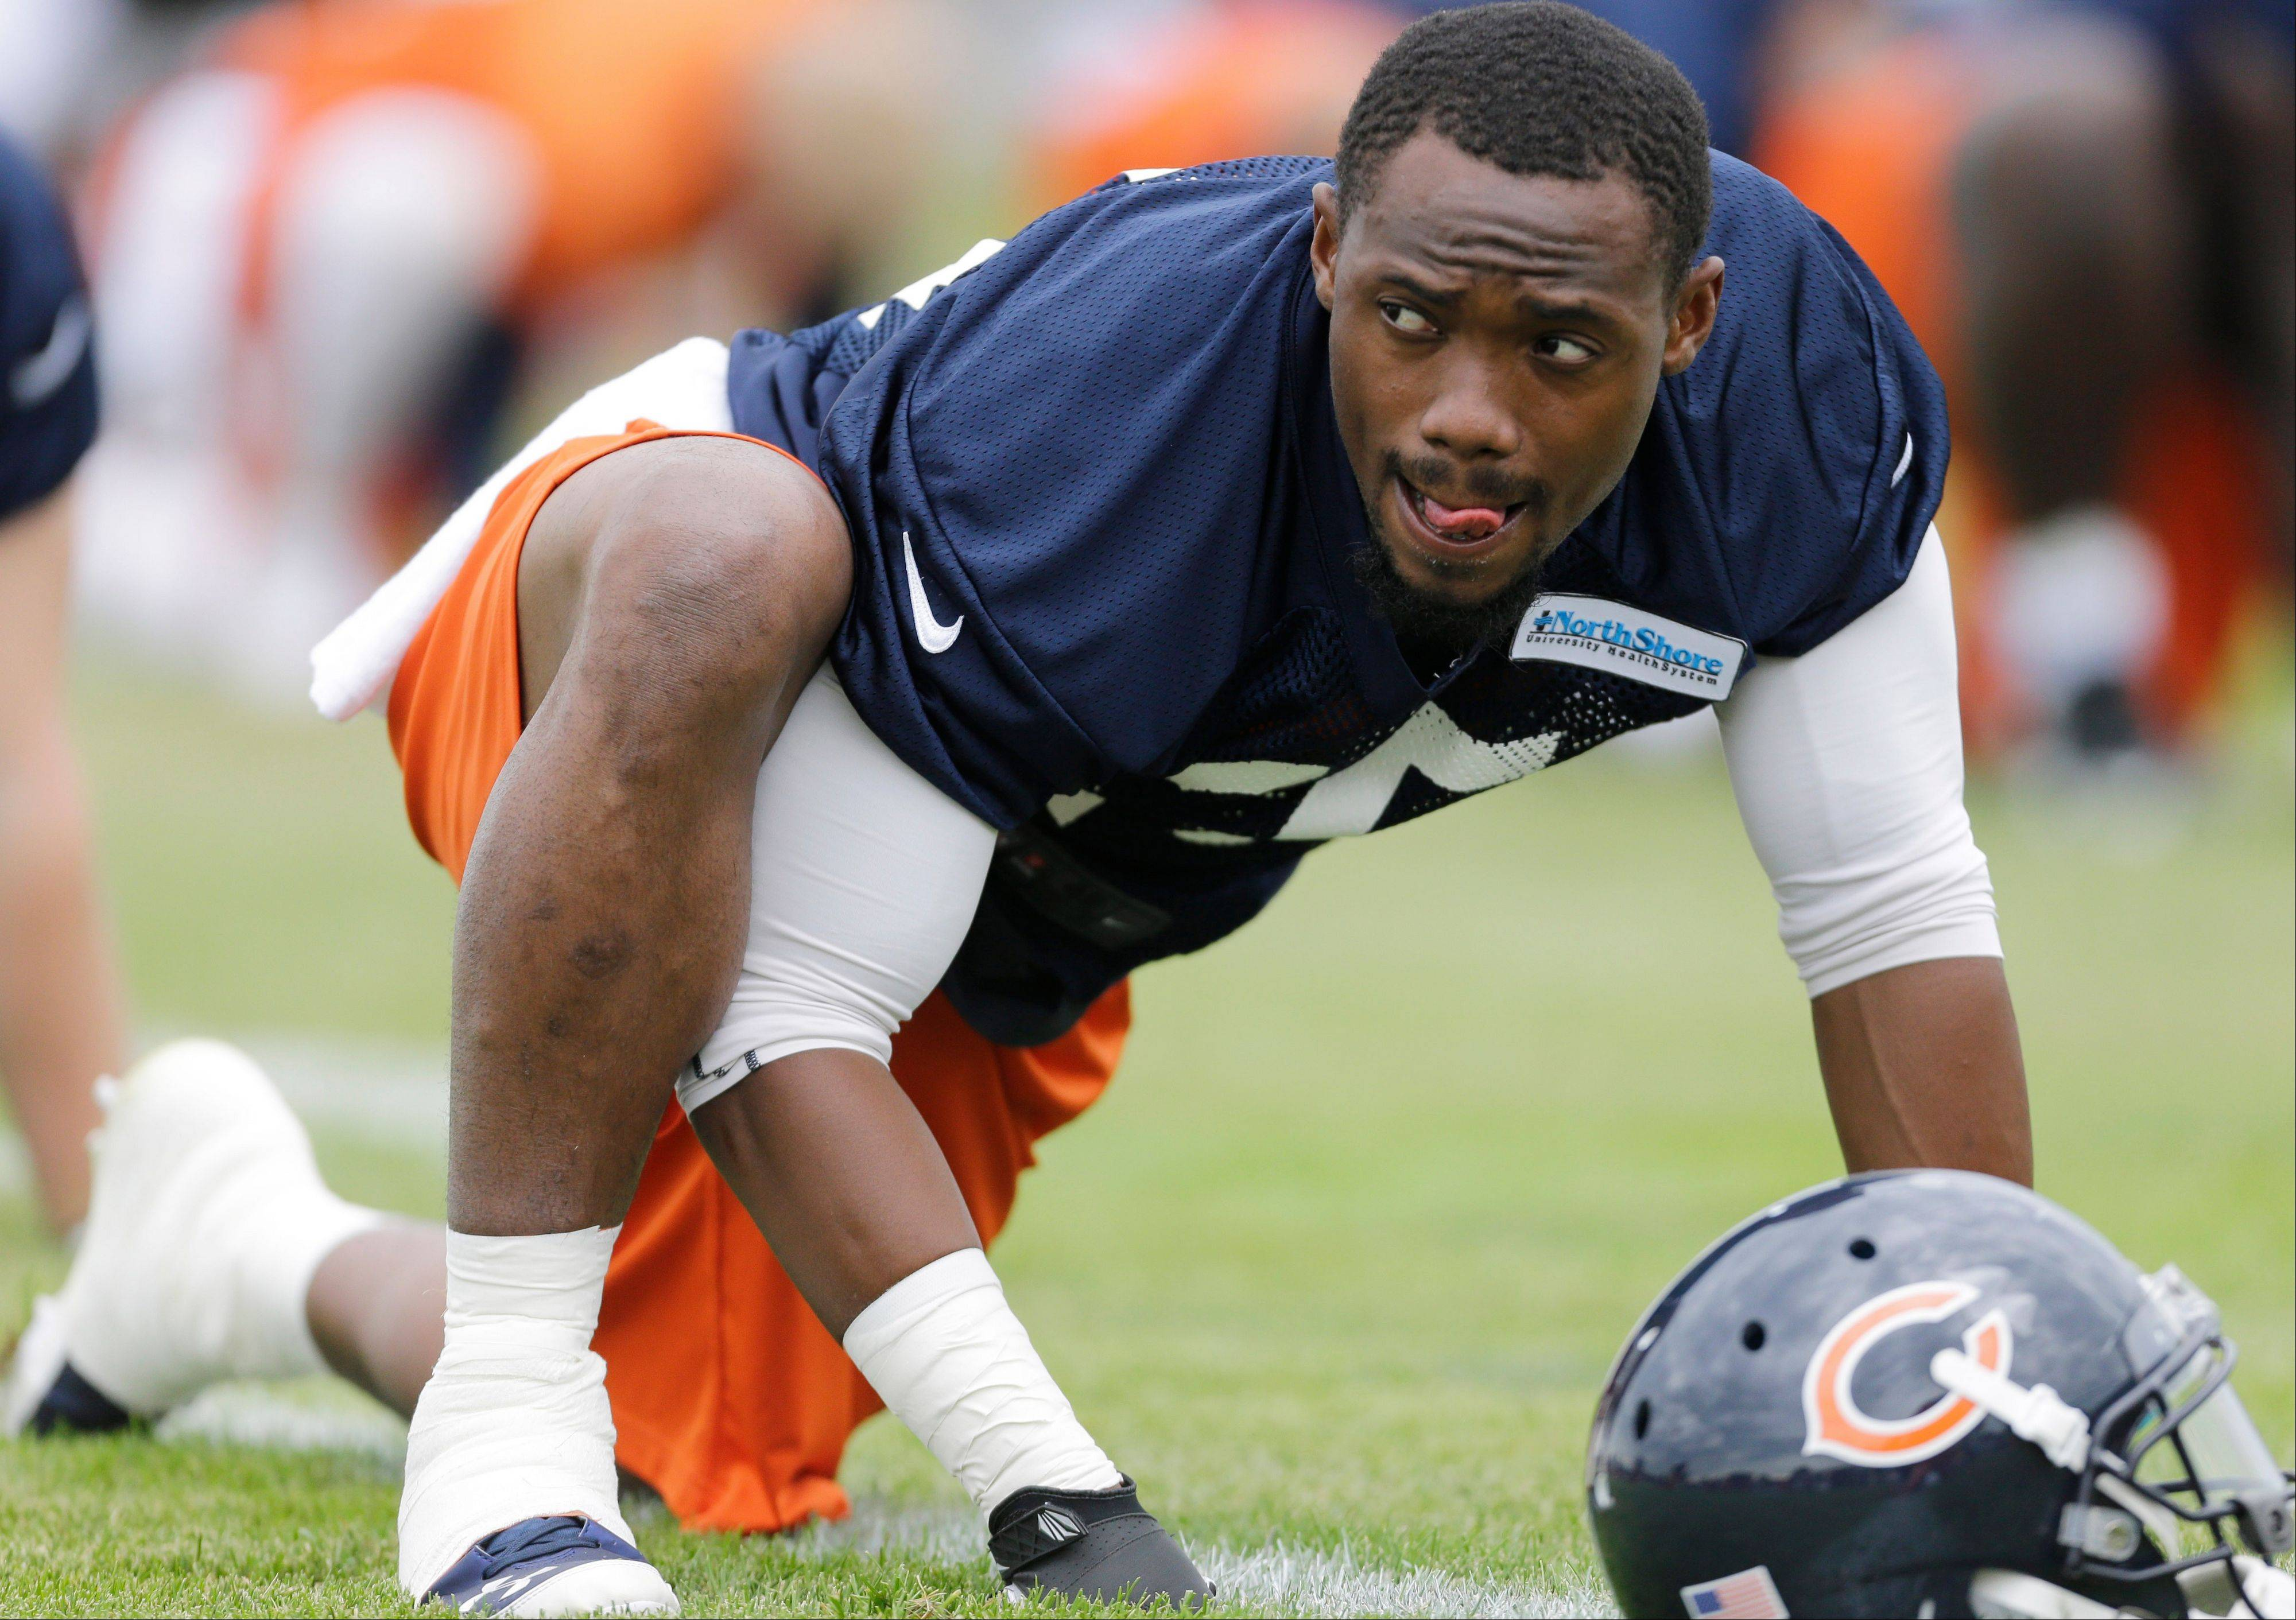 Chicago Bears running back Armando Allen stretches.